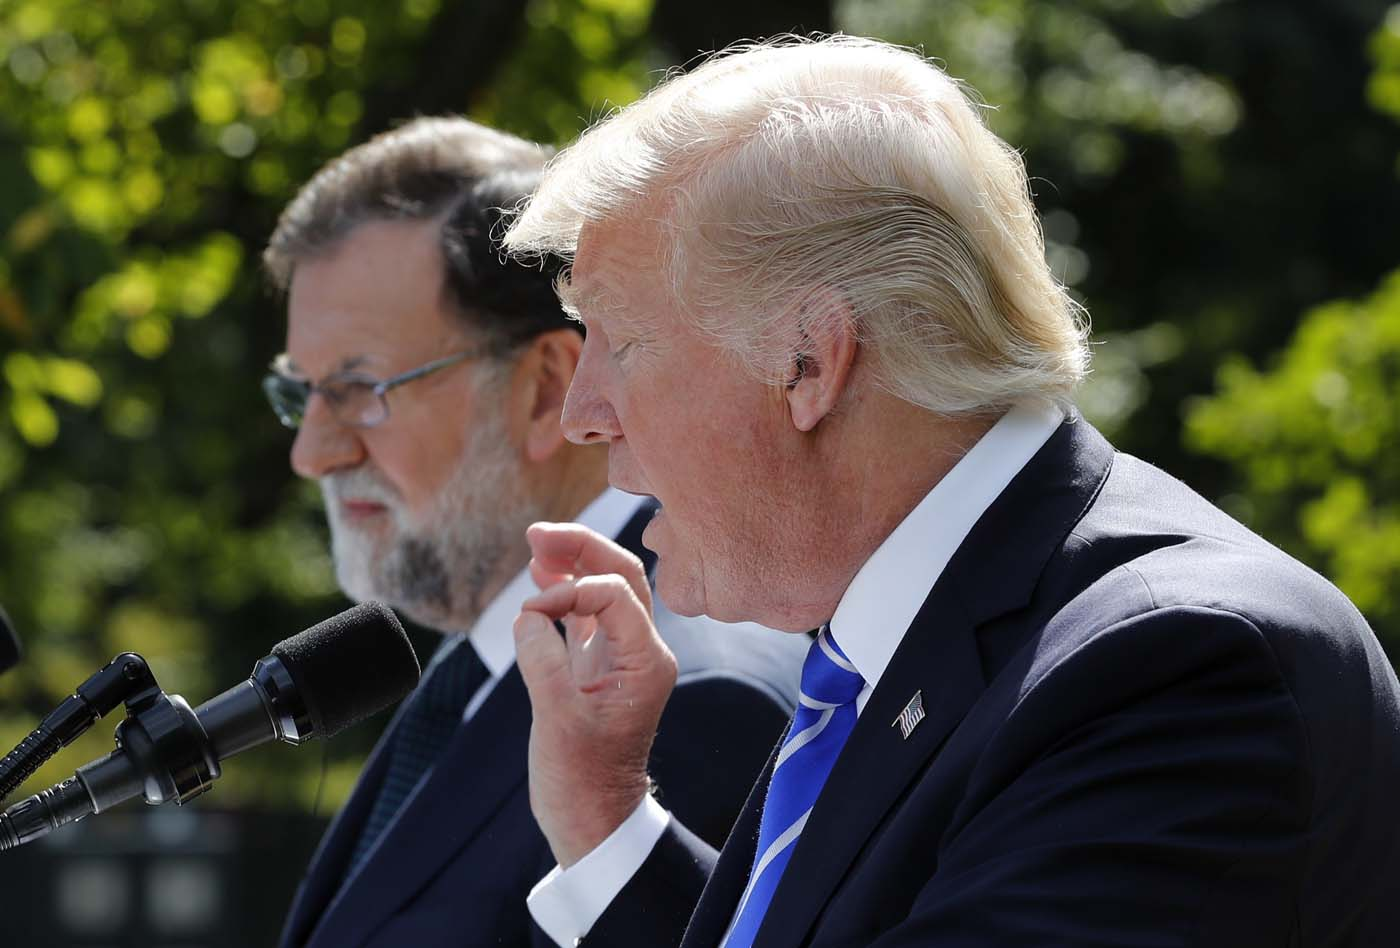 Spanish Prime Minister Mariano Rajoy and U.S. President Donald Trump hold a joint news conference in the Rose Garden at the White House in Washington, U.S., September 26, 2017. REUTERS/Jonathan Ernst